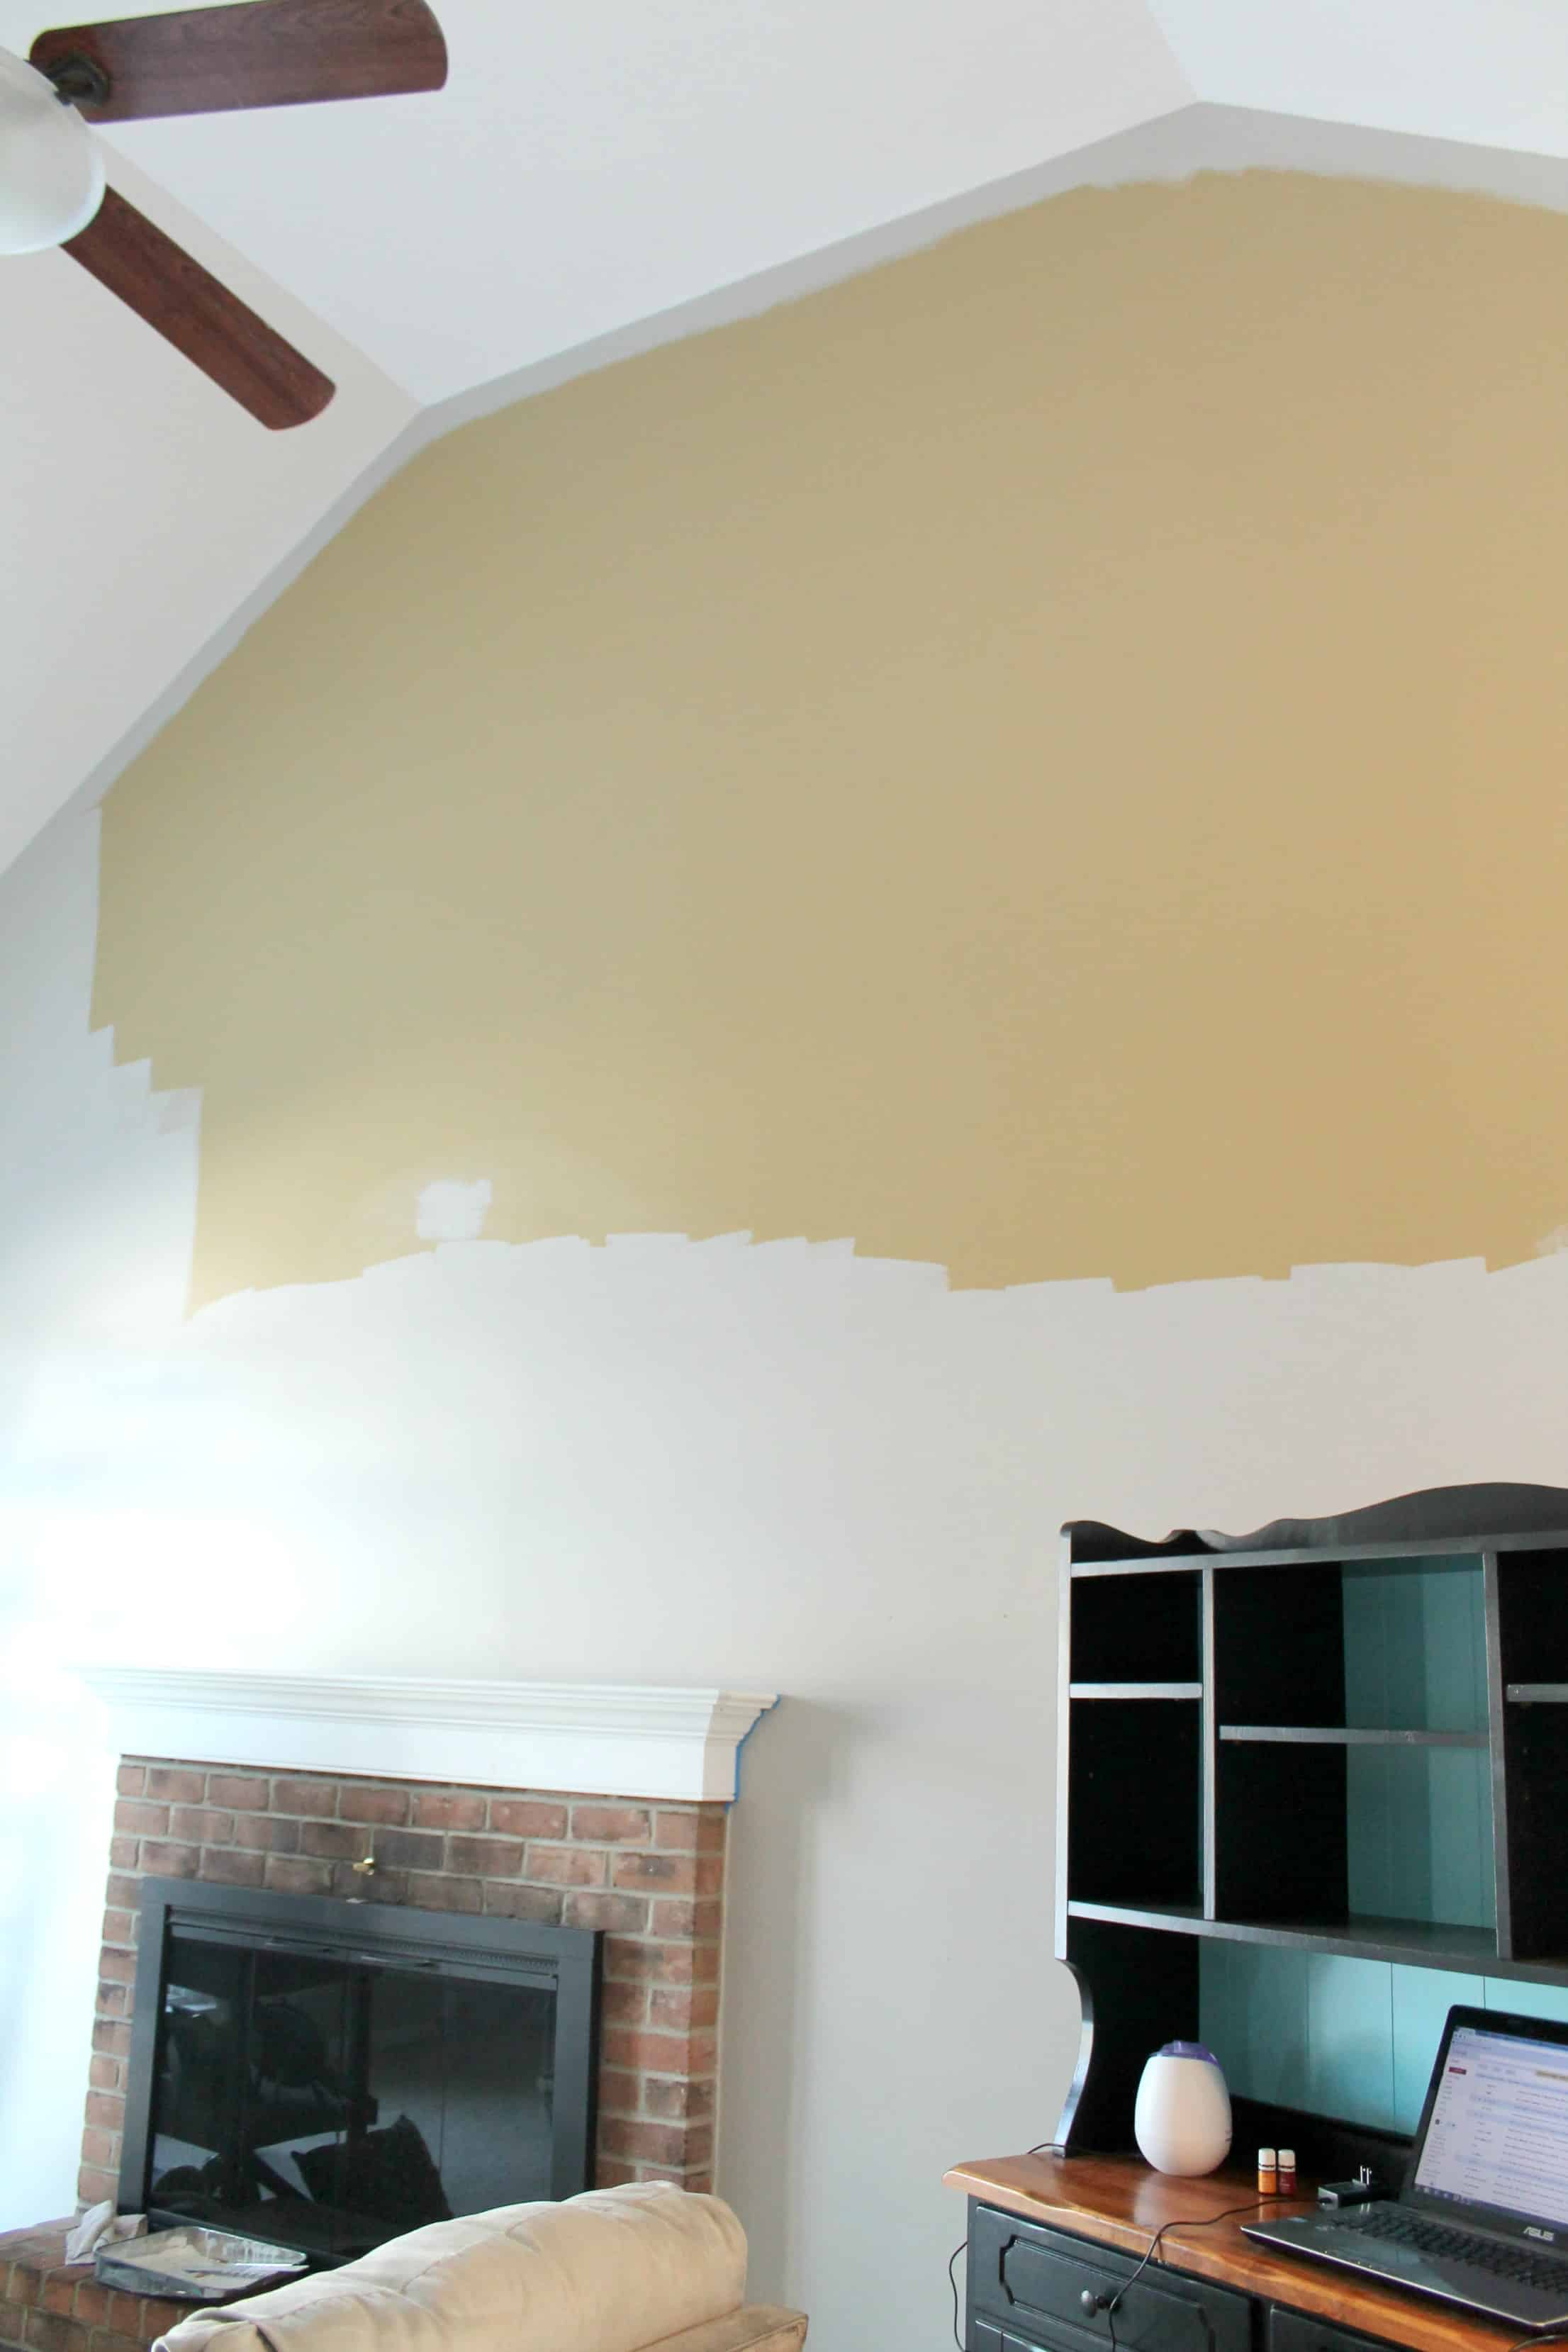 How to paint a room with high ceilings a turtle 39 s life for Tips for painting ceiling